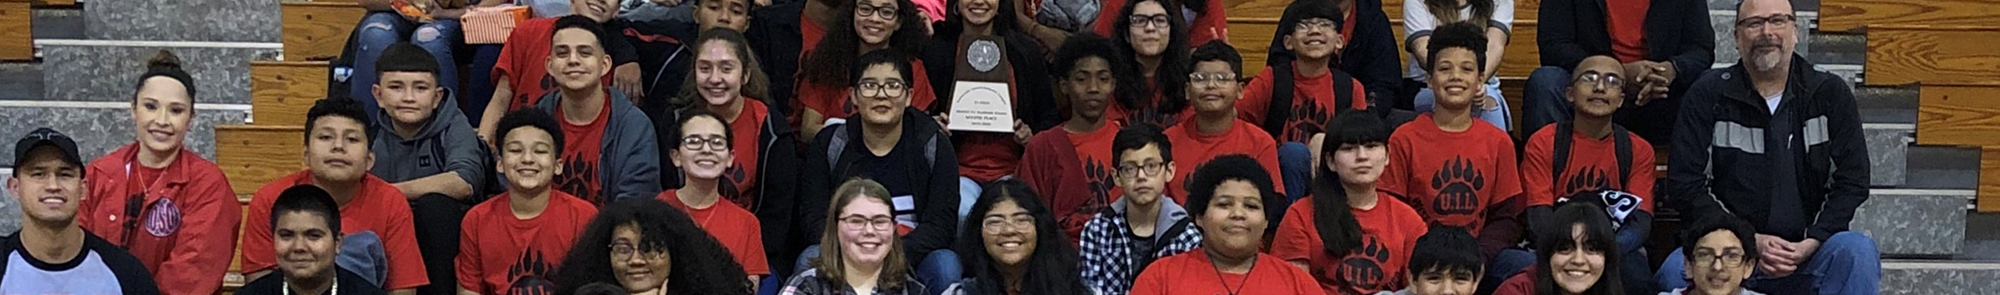 Junior high uil participants sitting together after earning second place at annual event.